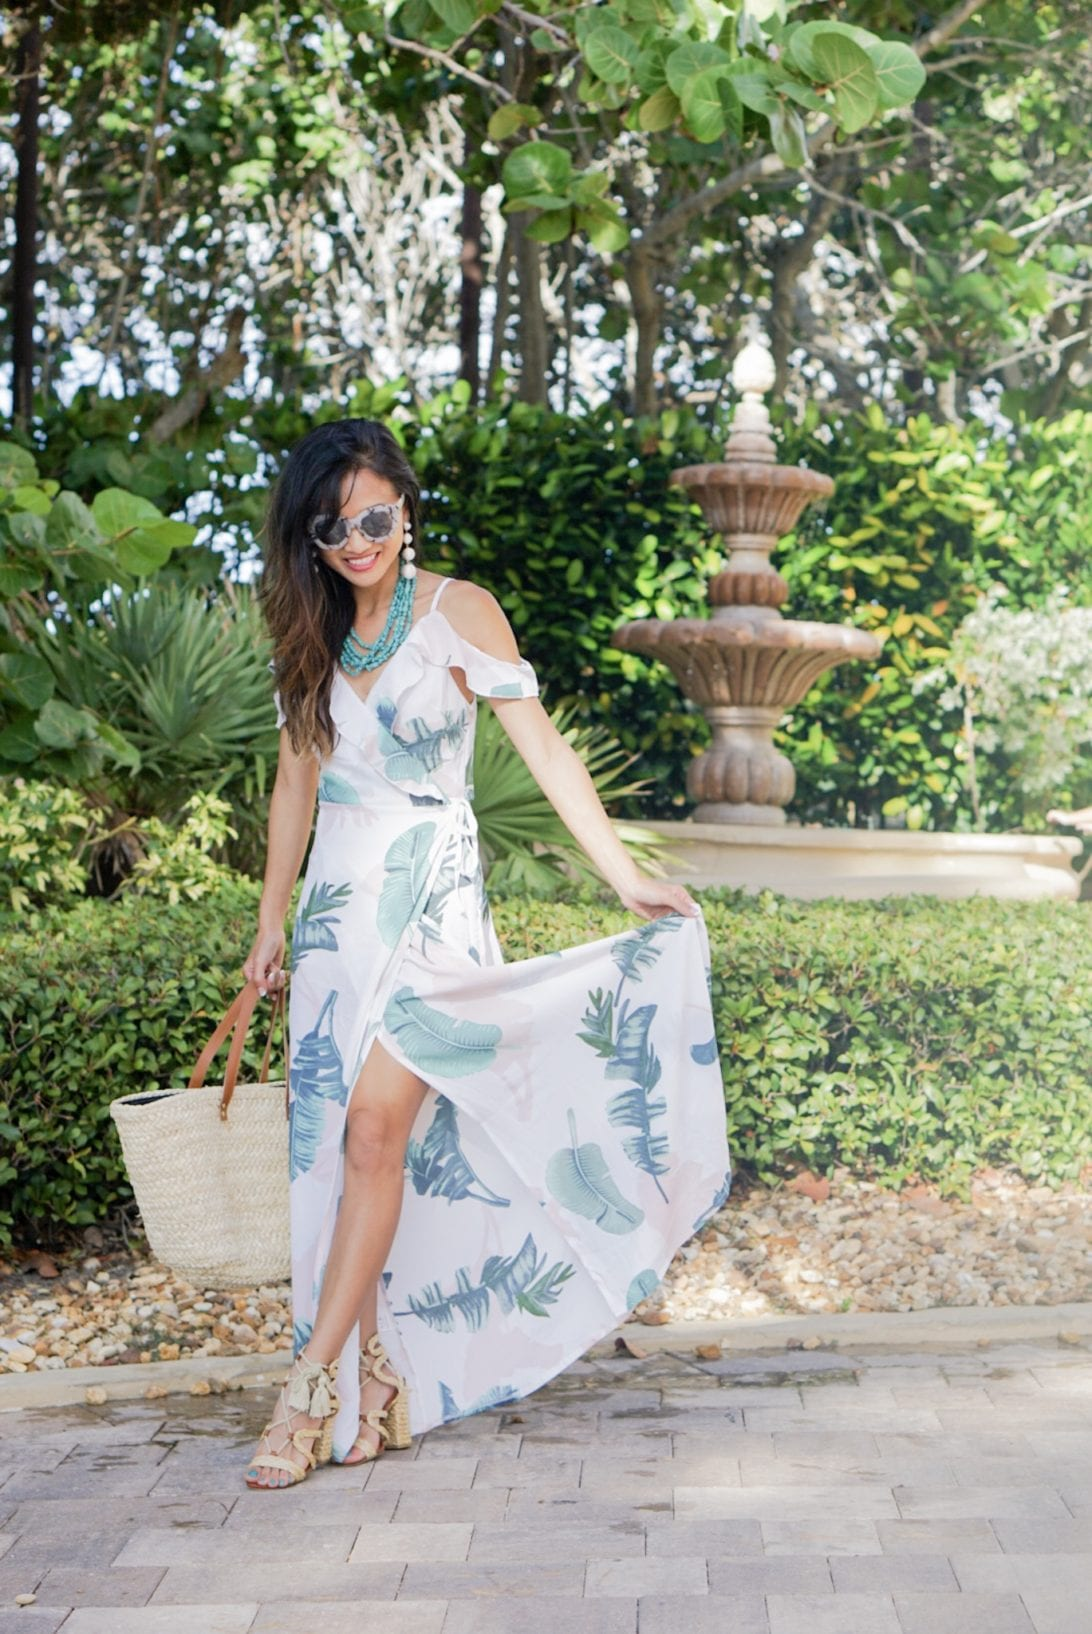 Palm Print Dress for Under $20, summer style, palm print dress, off the shoulder dress, monogrammed bag, turquoise necklace, quay sunglasses, vacation style, Mia sandals, Gigi Ghillie Sandal